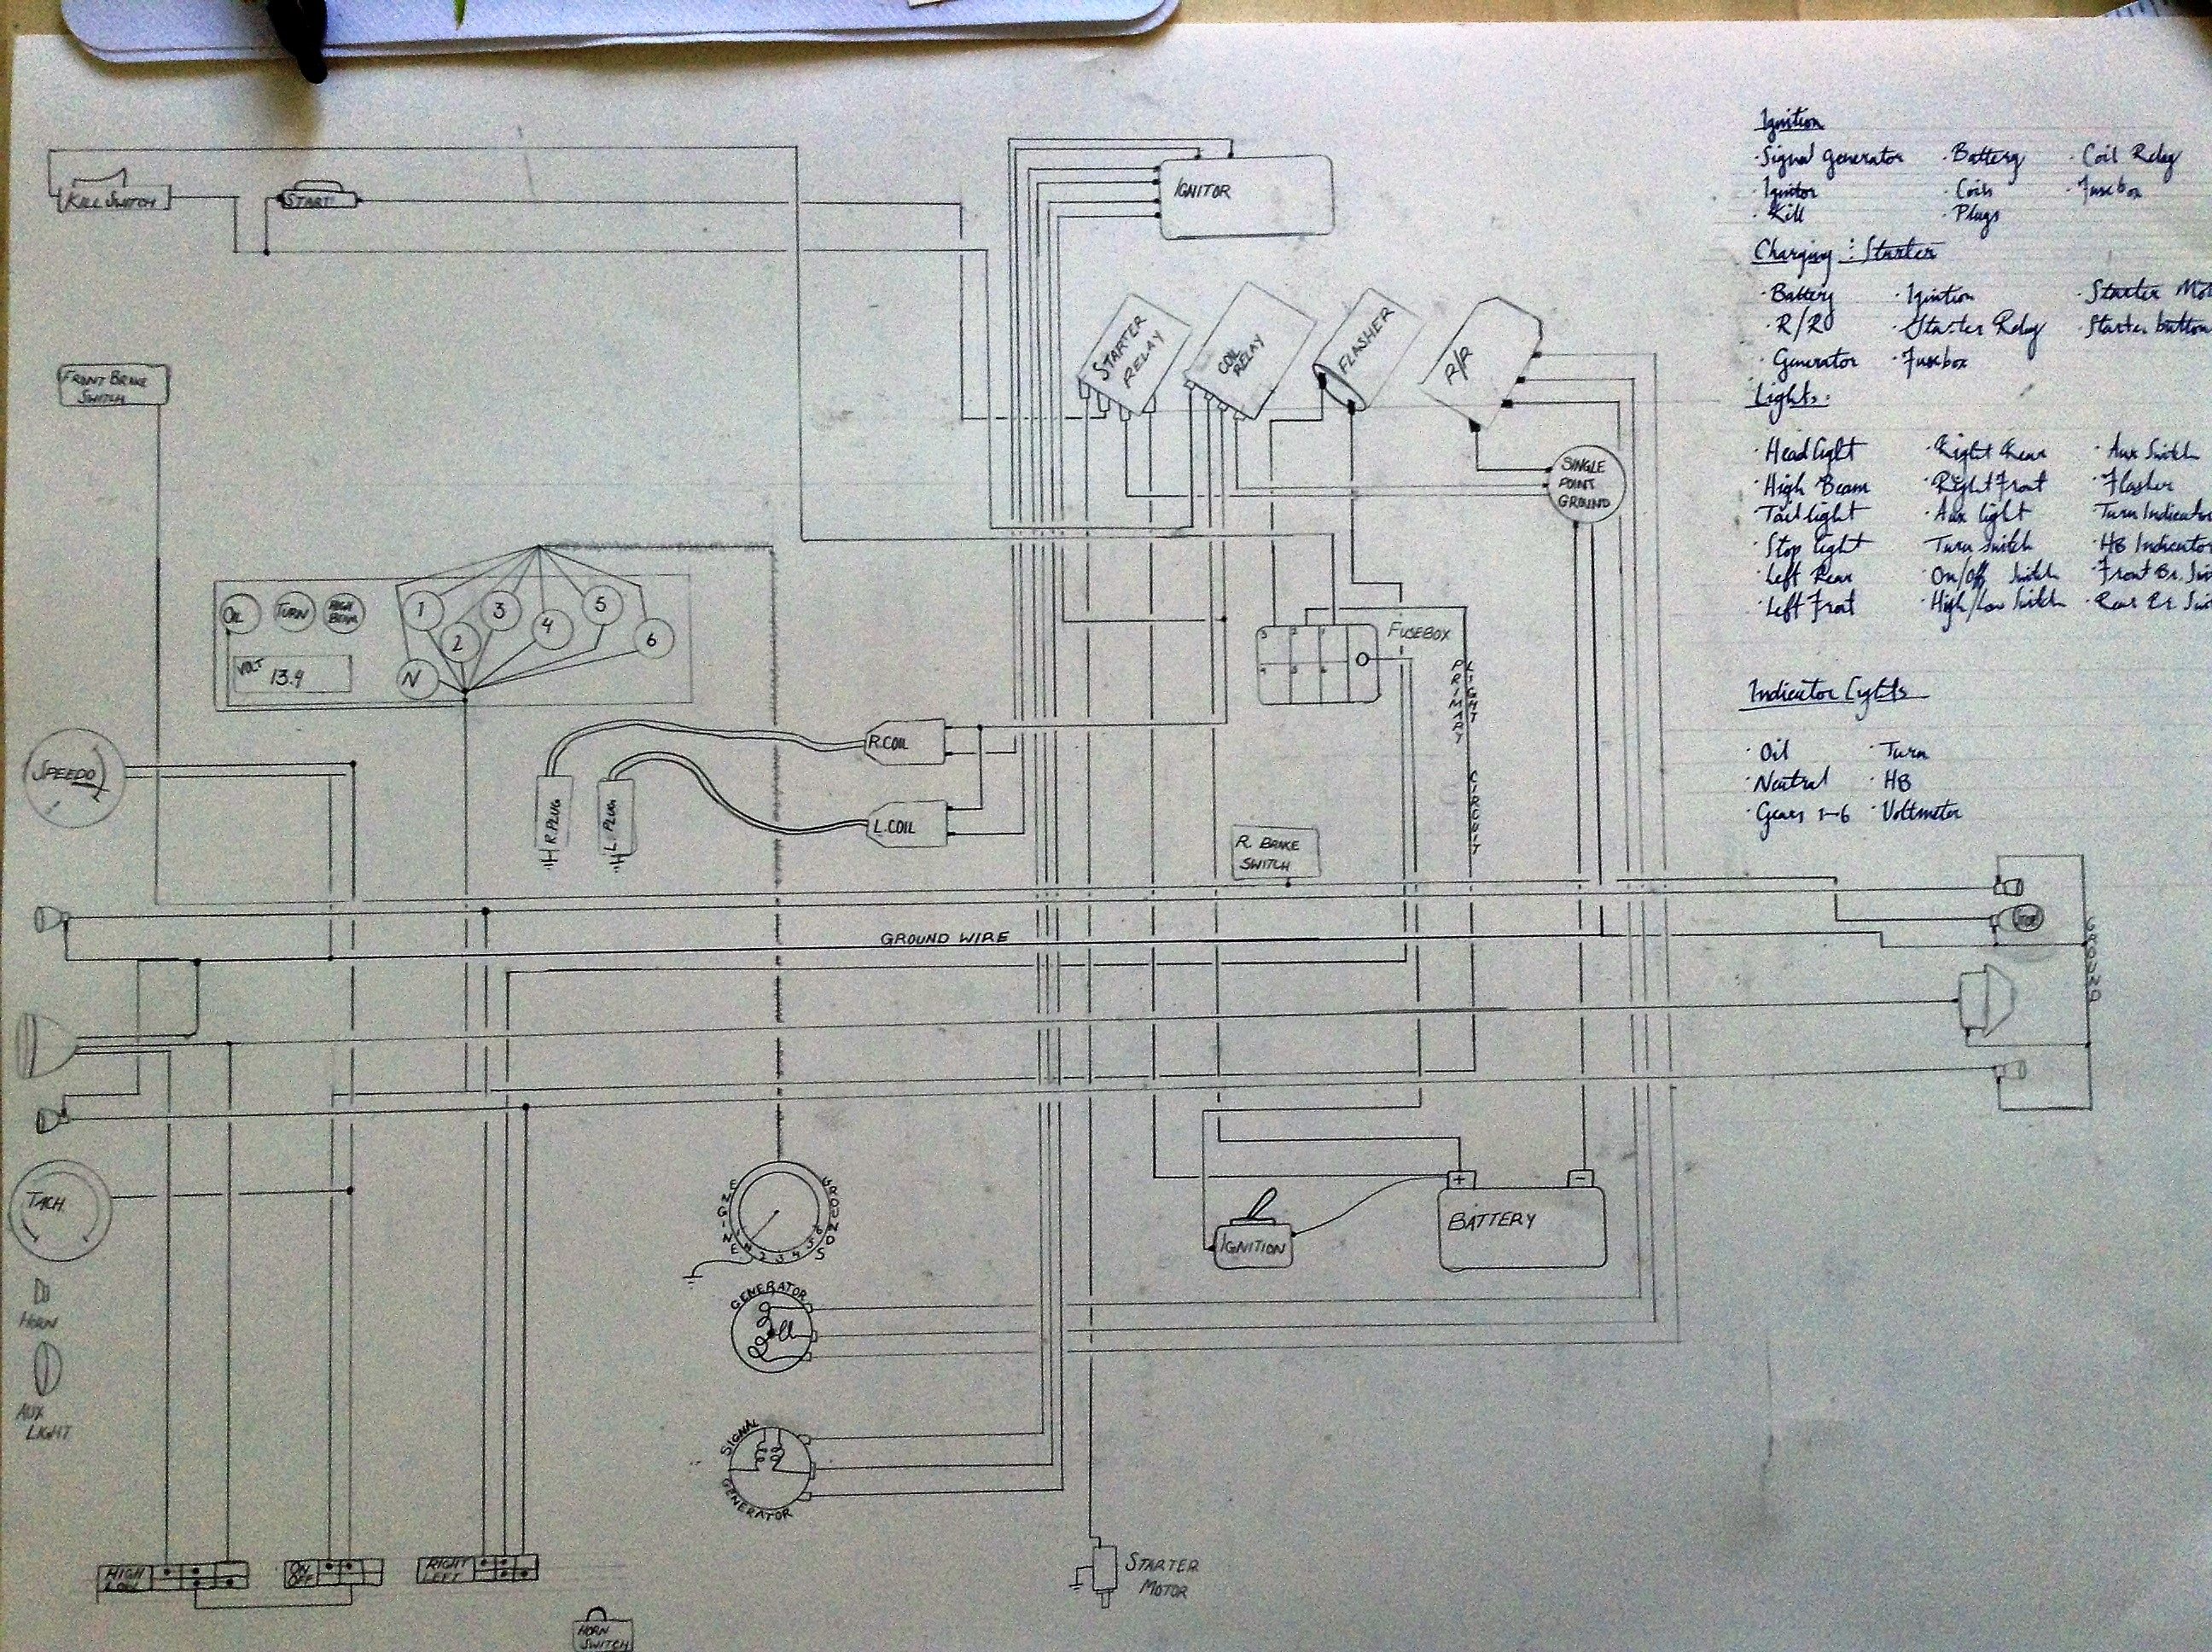 gs450 wiring diagram u2013 gs450liebelow is a tutorial on building a wiring harness for your [ 2592 x 1936 Pixel ]